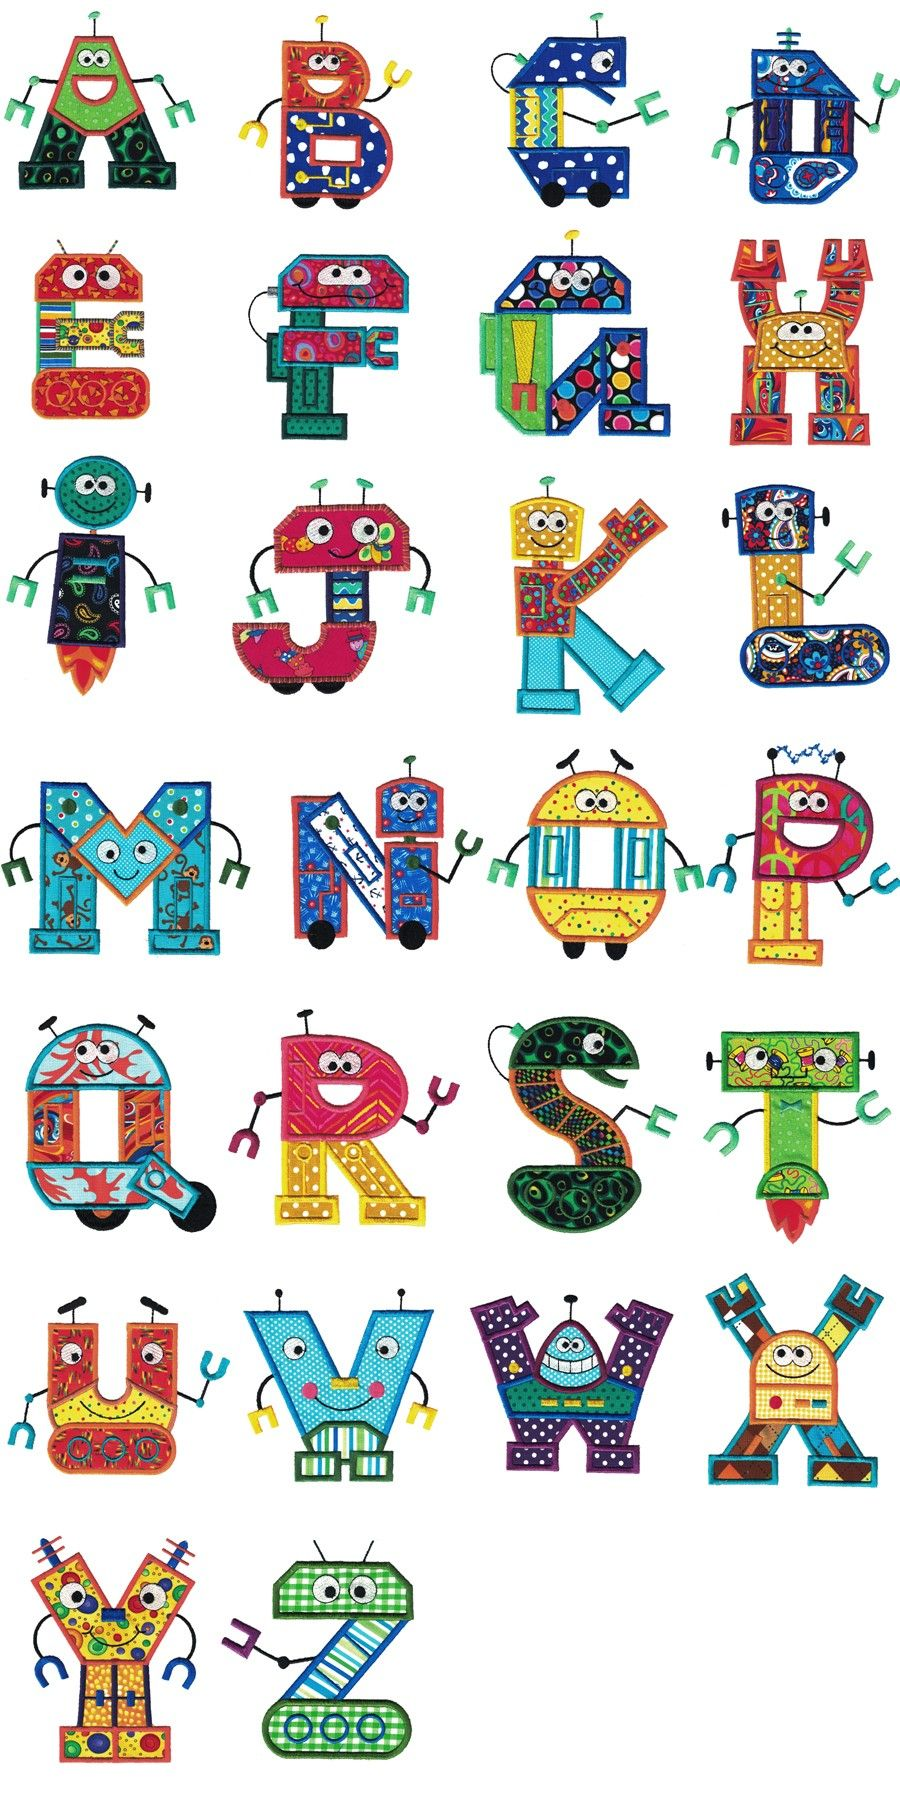 robots applique alphabet designs by juju pinterest ab c daire polices d 39 criture et appliqu. Black Bedroom Furniture Sets. Home Design Ideas